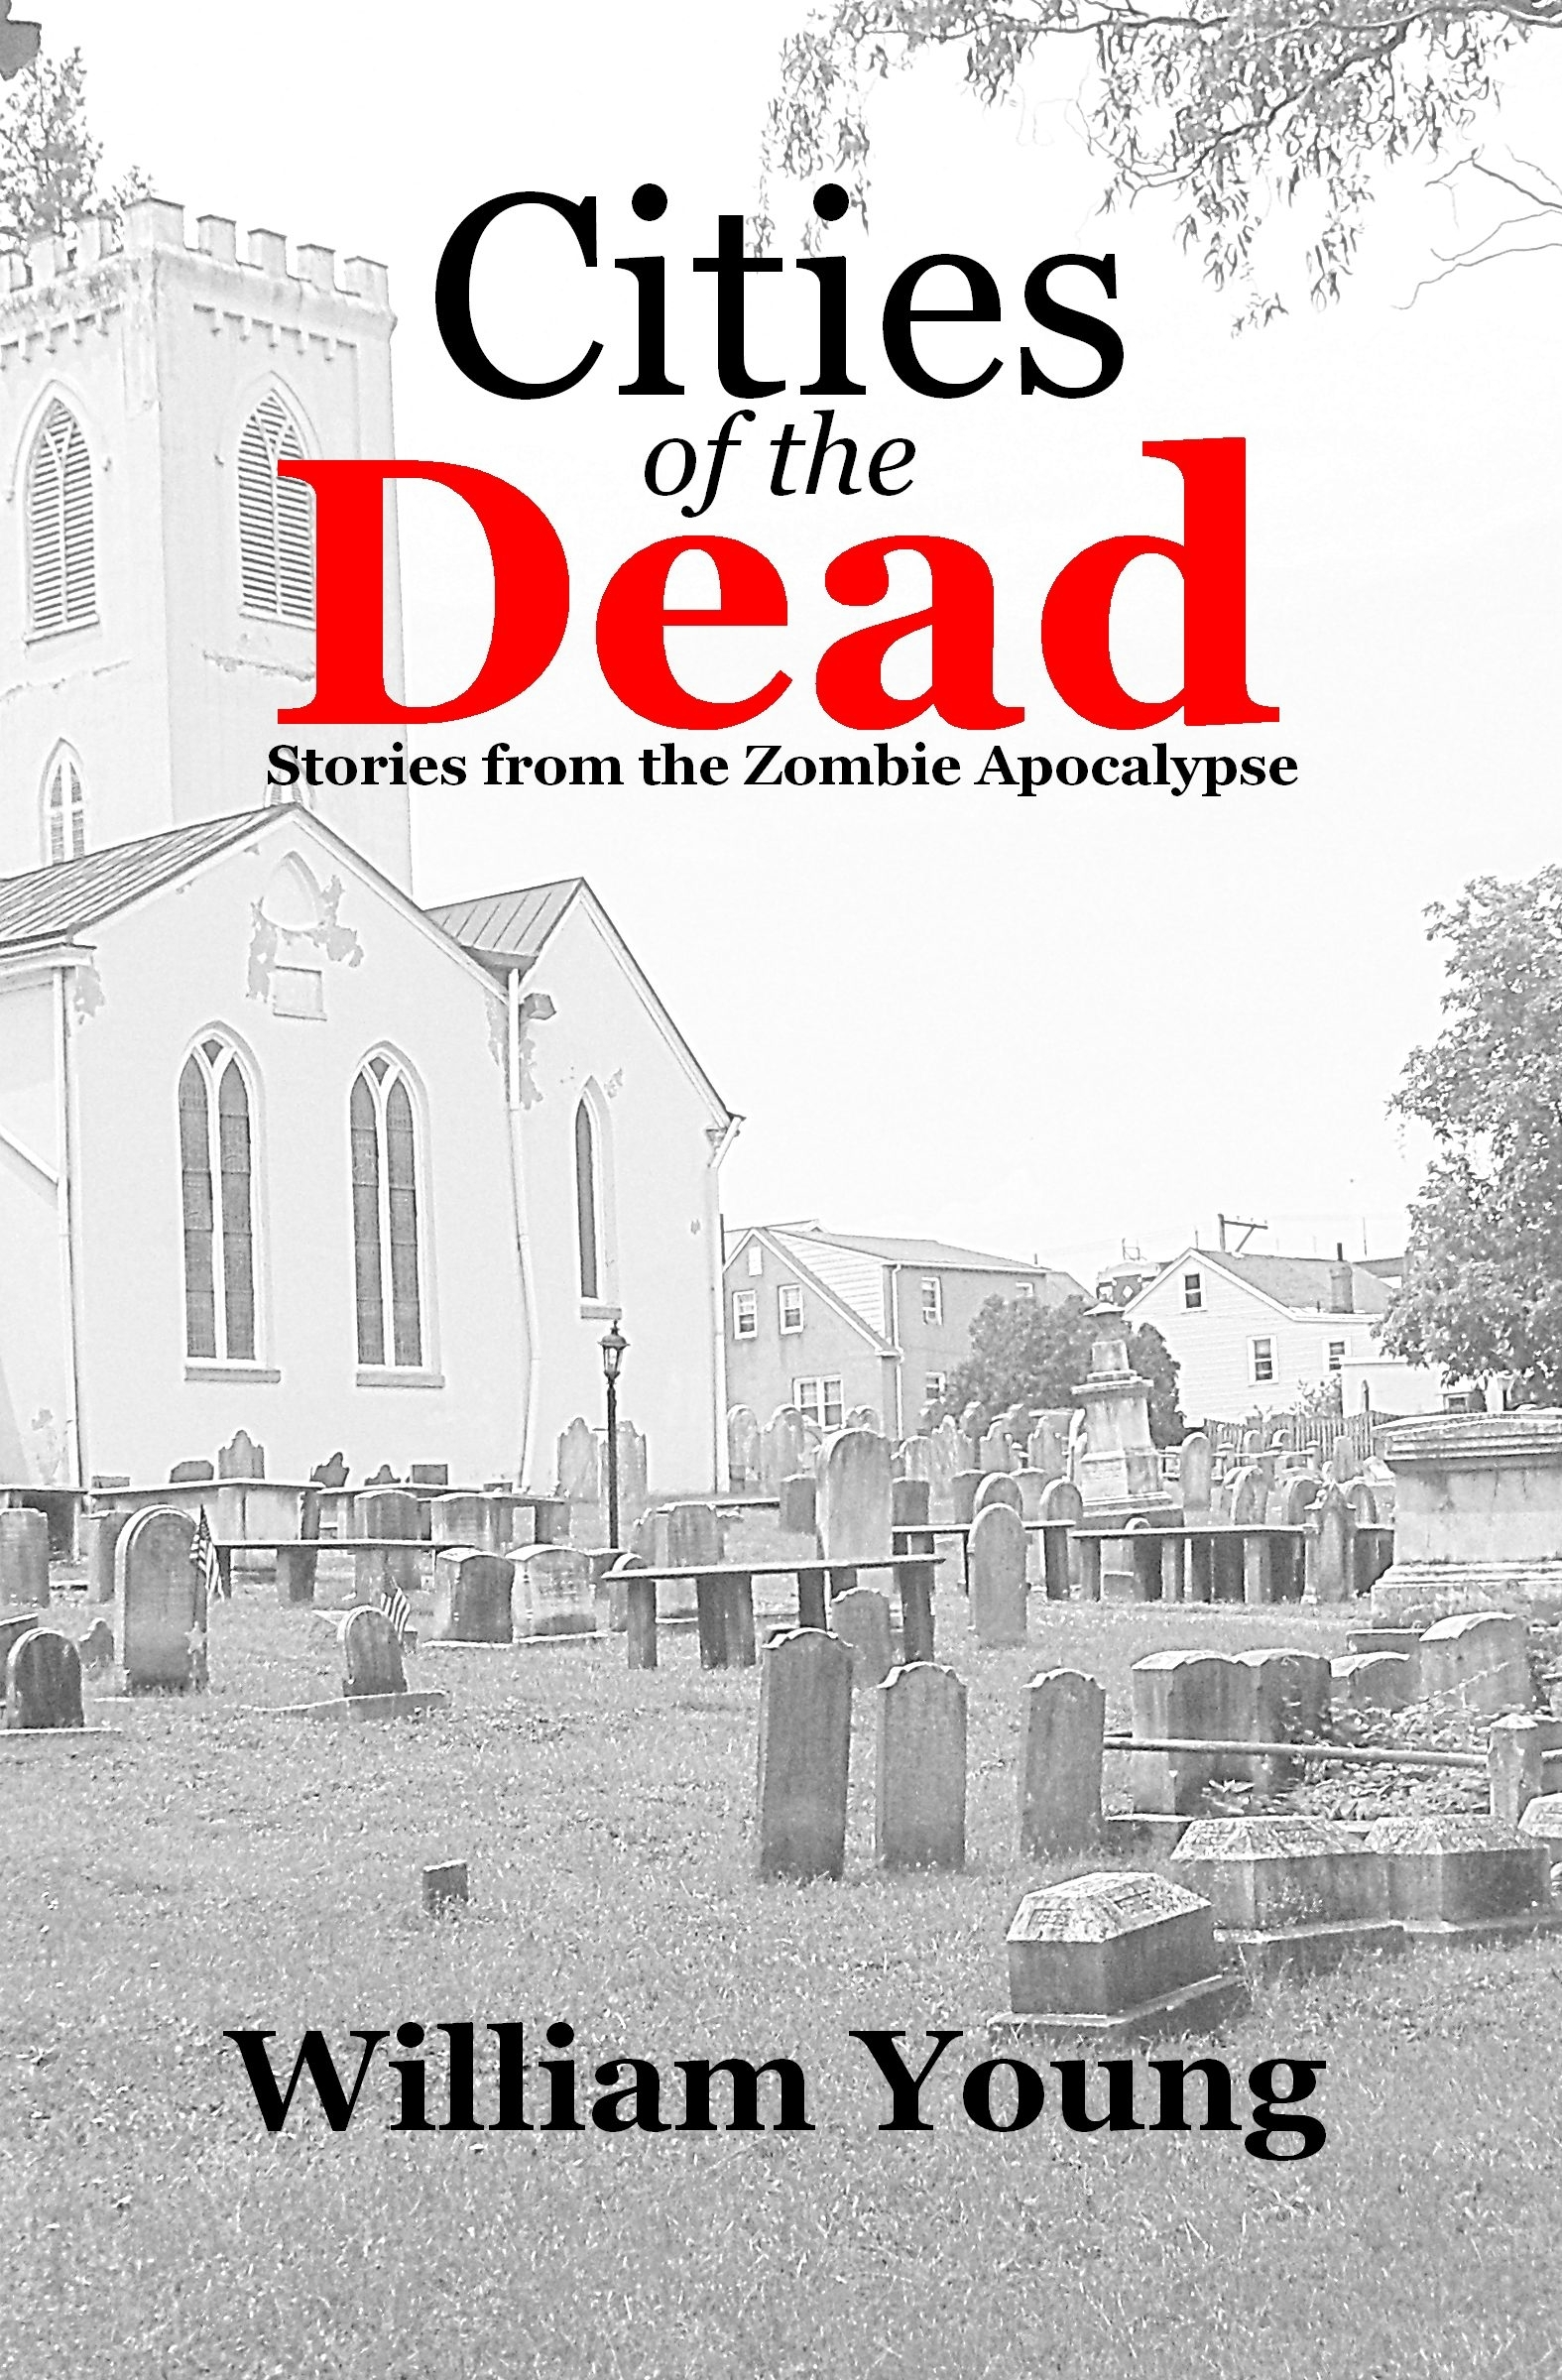 Cities of the Dead: Stories from the Zombie Apocalypse